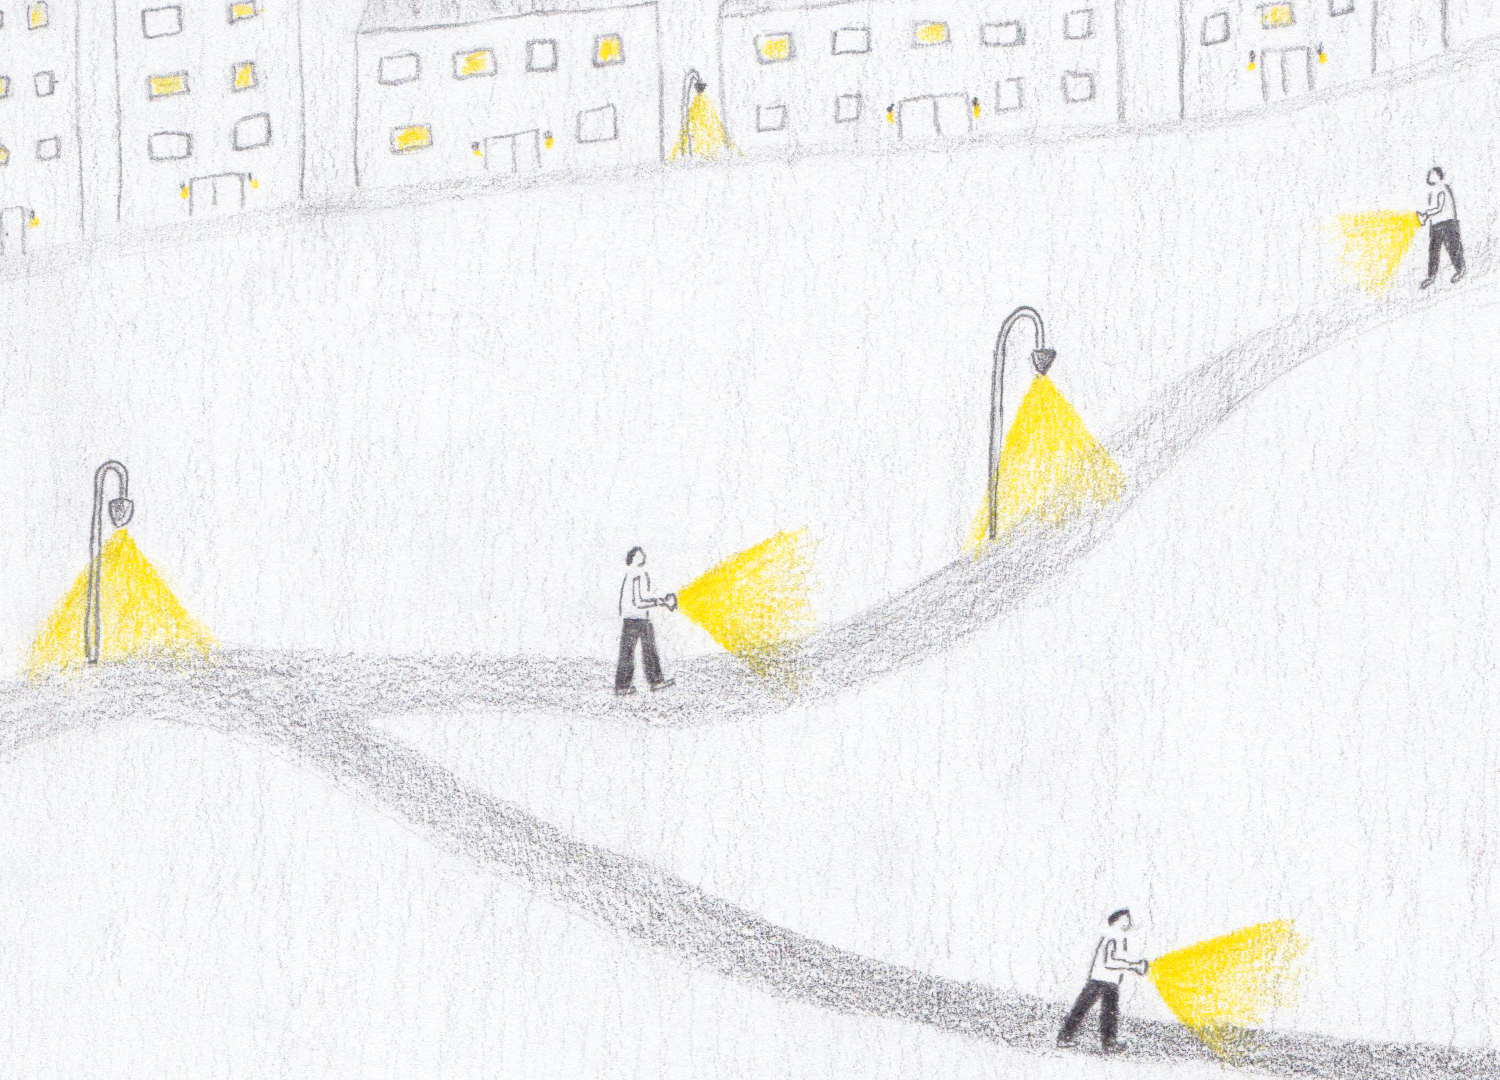 Three figures holding torches walking the streets at night-time during the pandemic